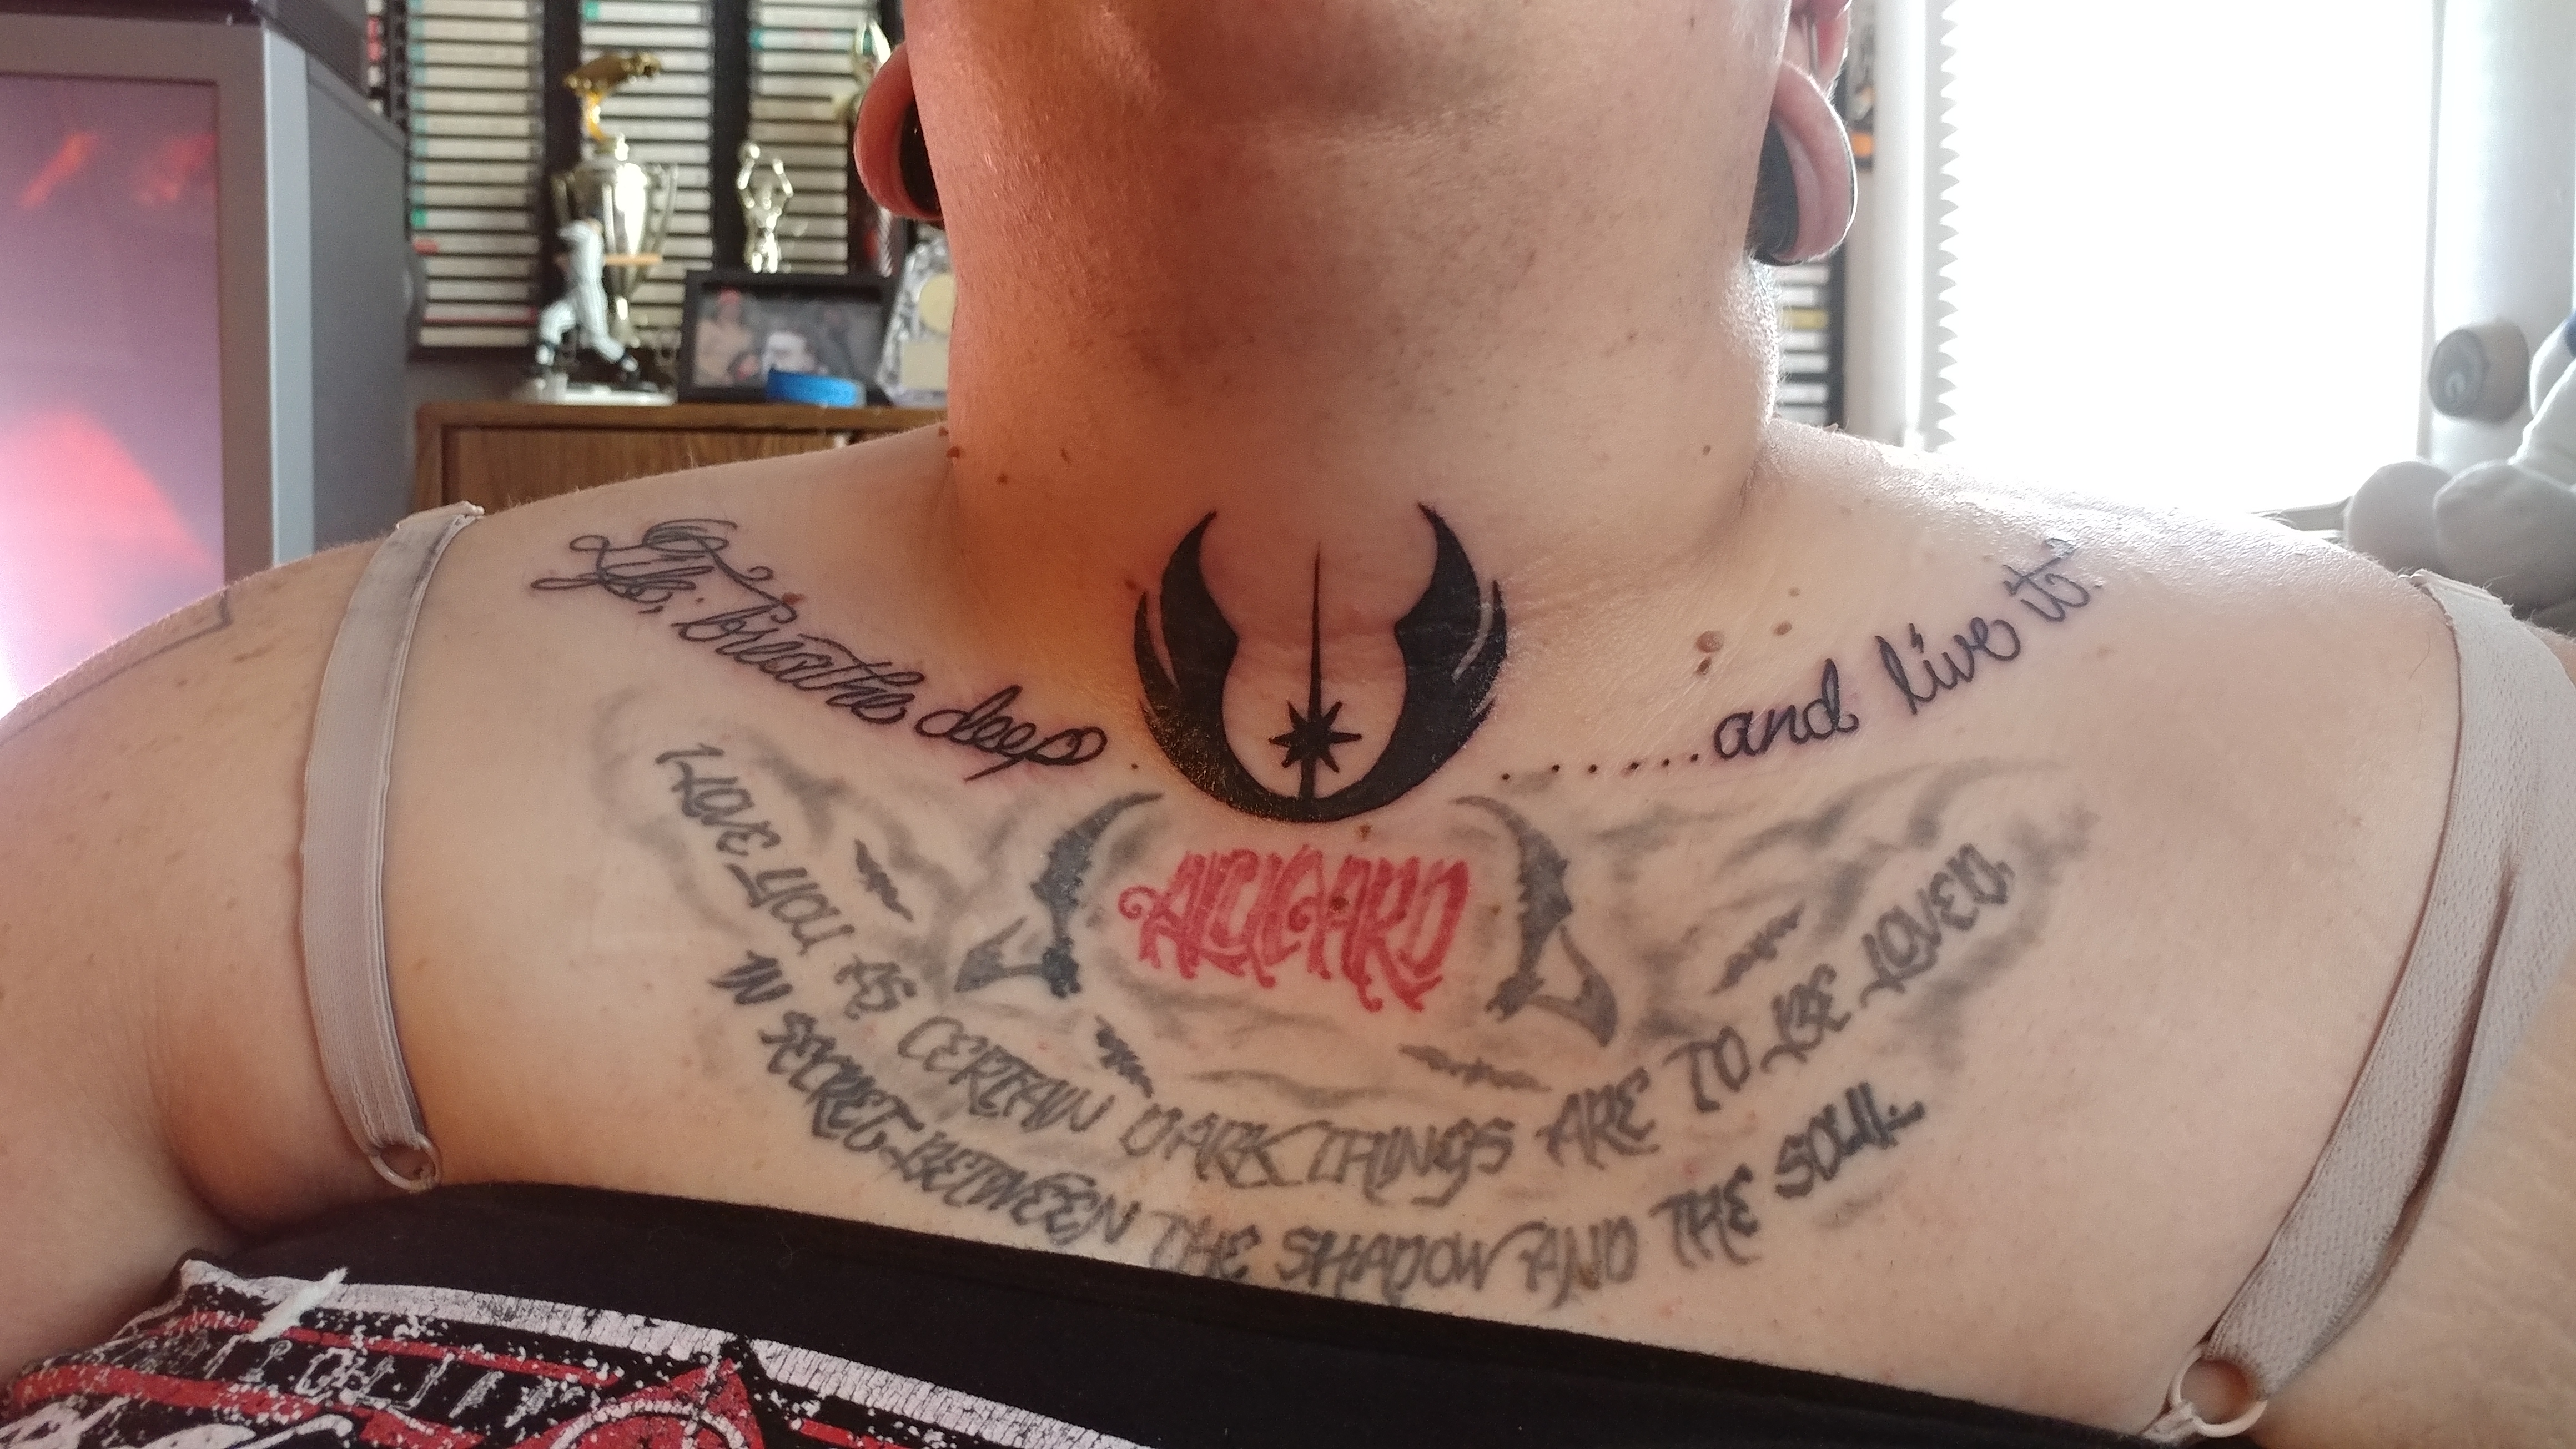 Does Anyone Else Have Tattoos Inspired By Some Jedi Wisdom Forum